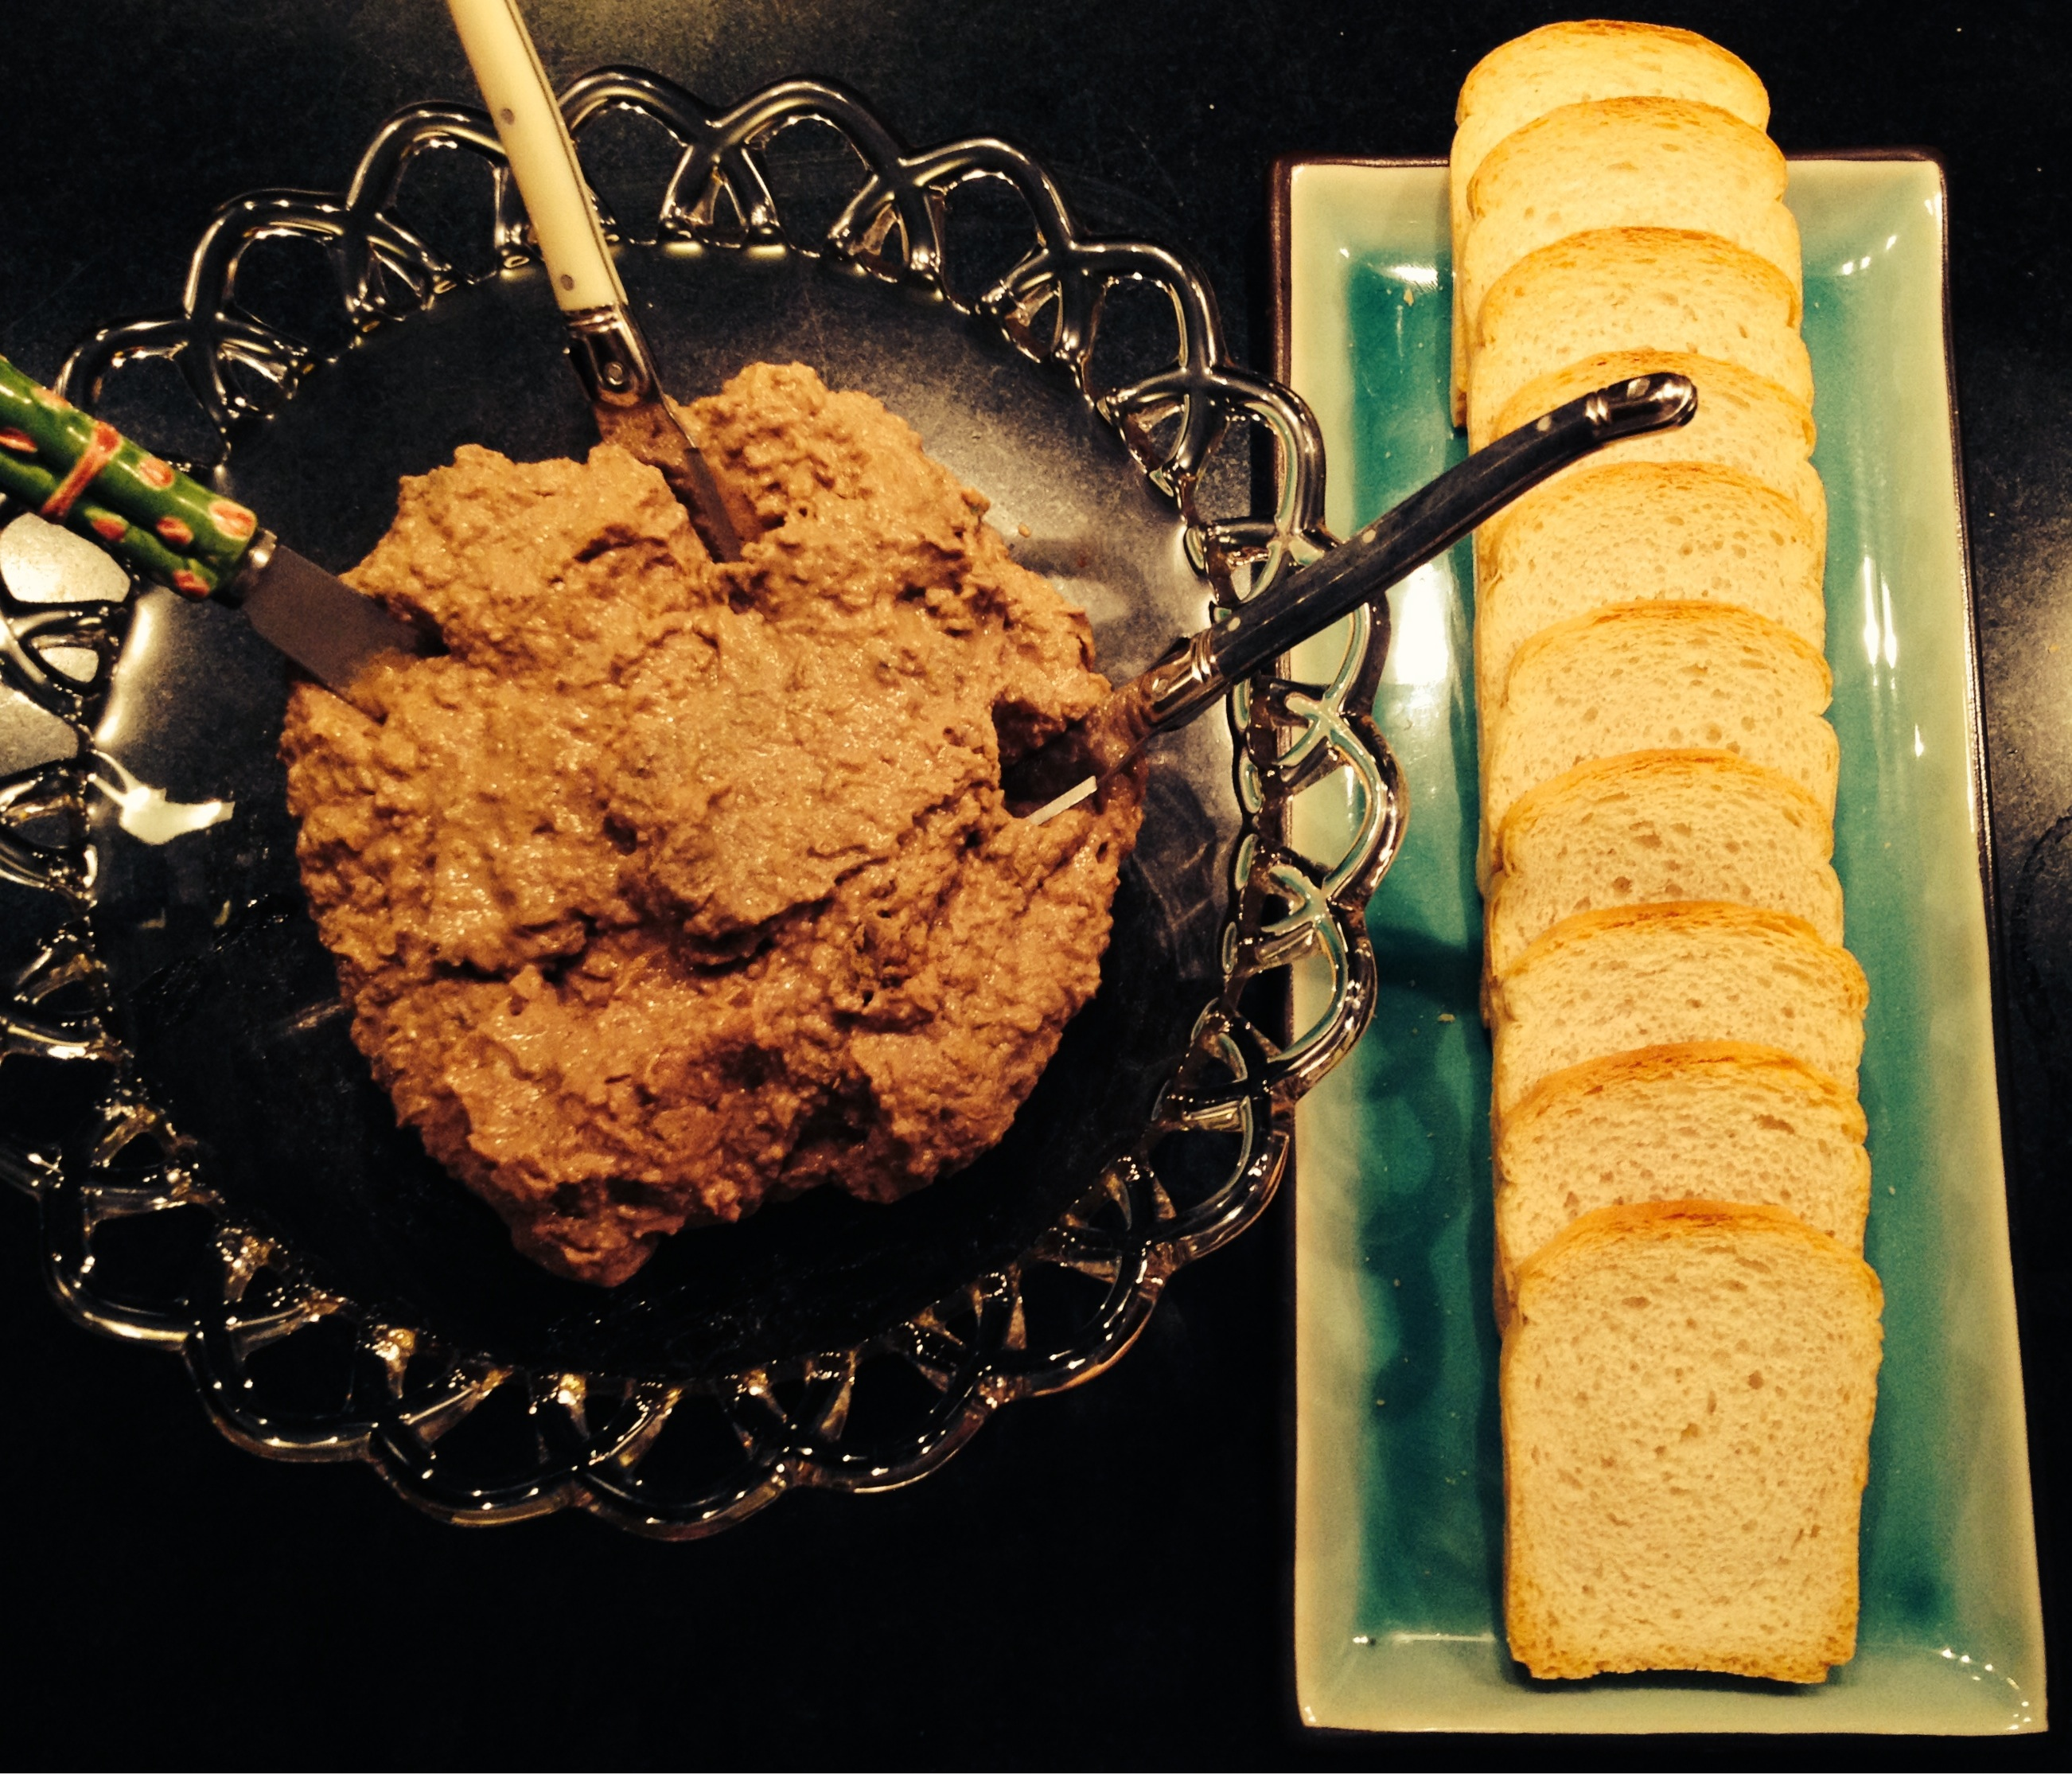 Chicken liver pate with toast.